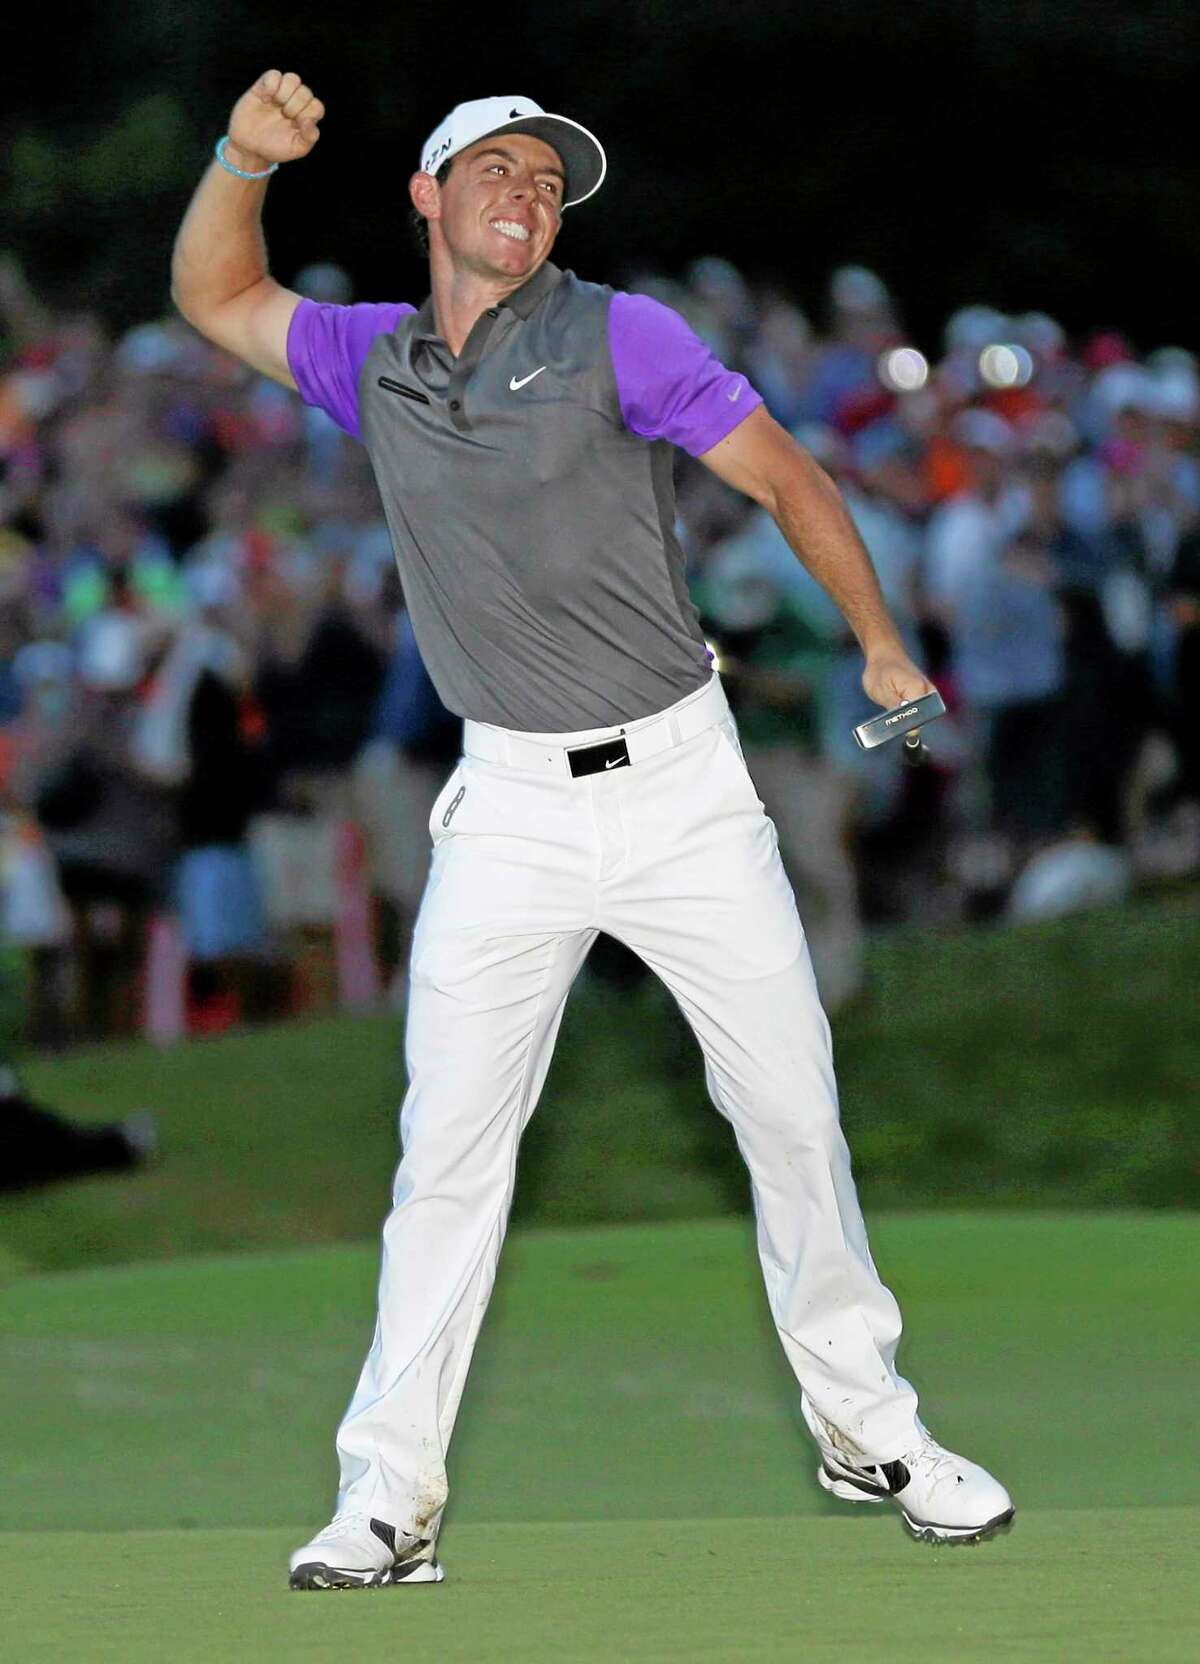 Rory McIlroy celebrates after winning the PGA Championship at Valhalla Golf Club on Sunday in Louisville, Ky.